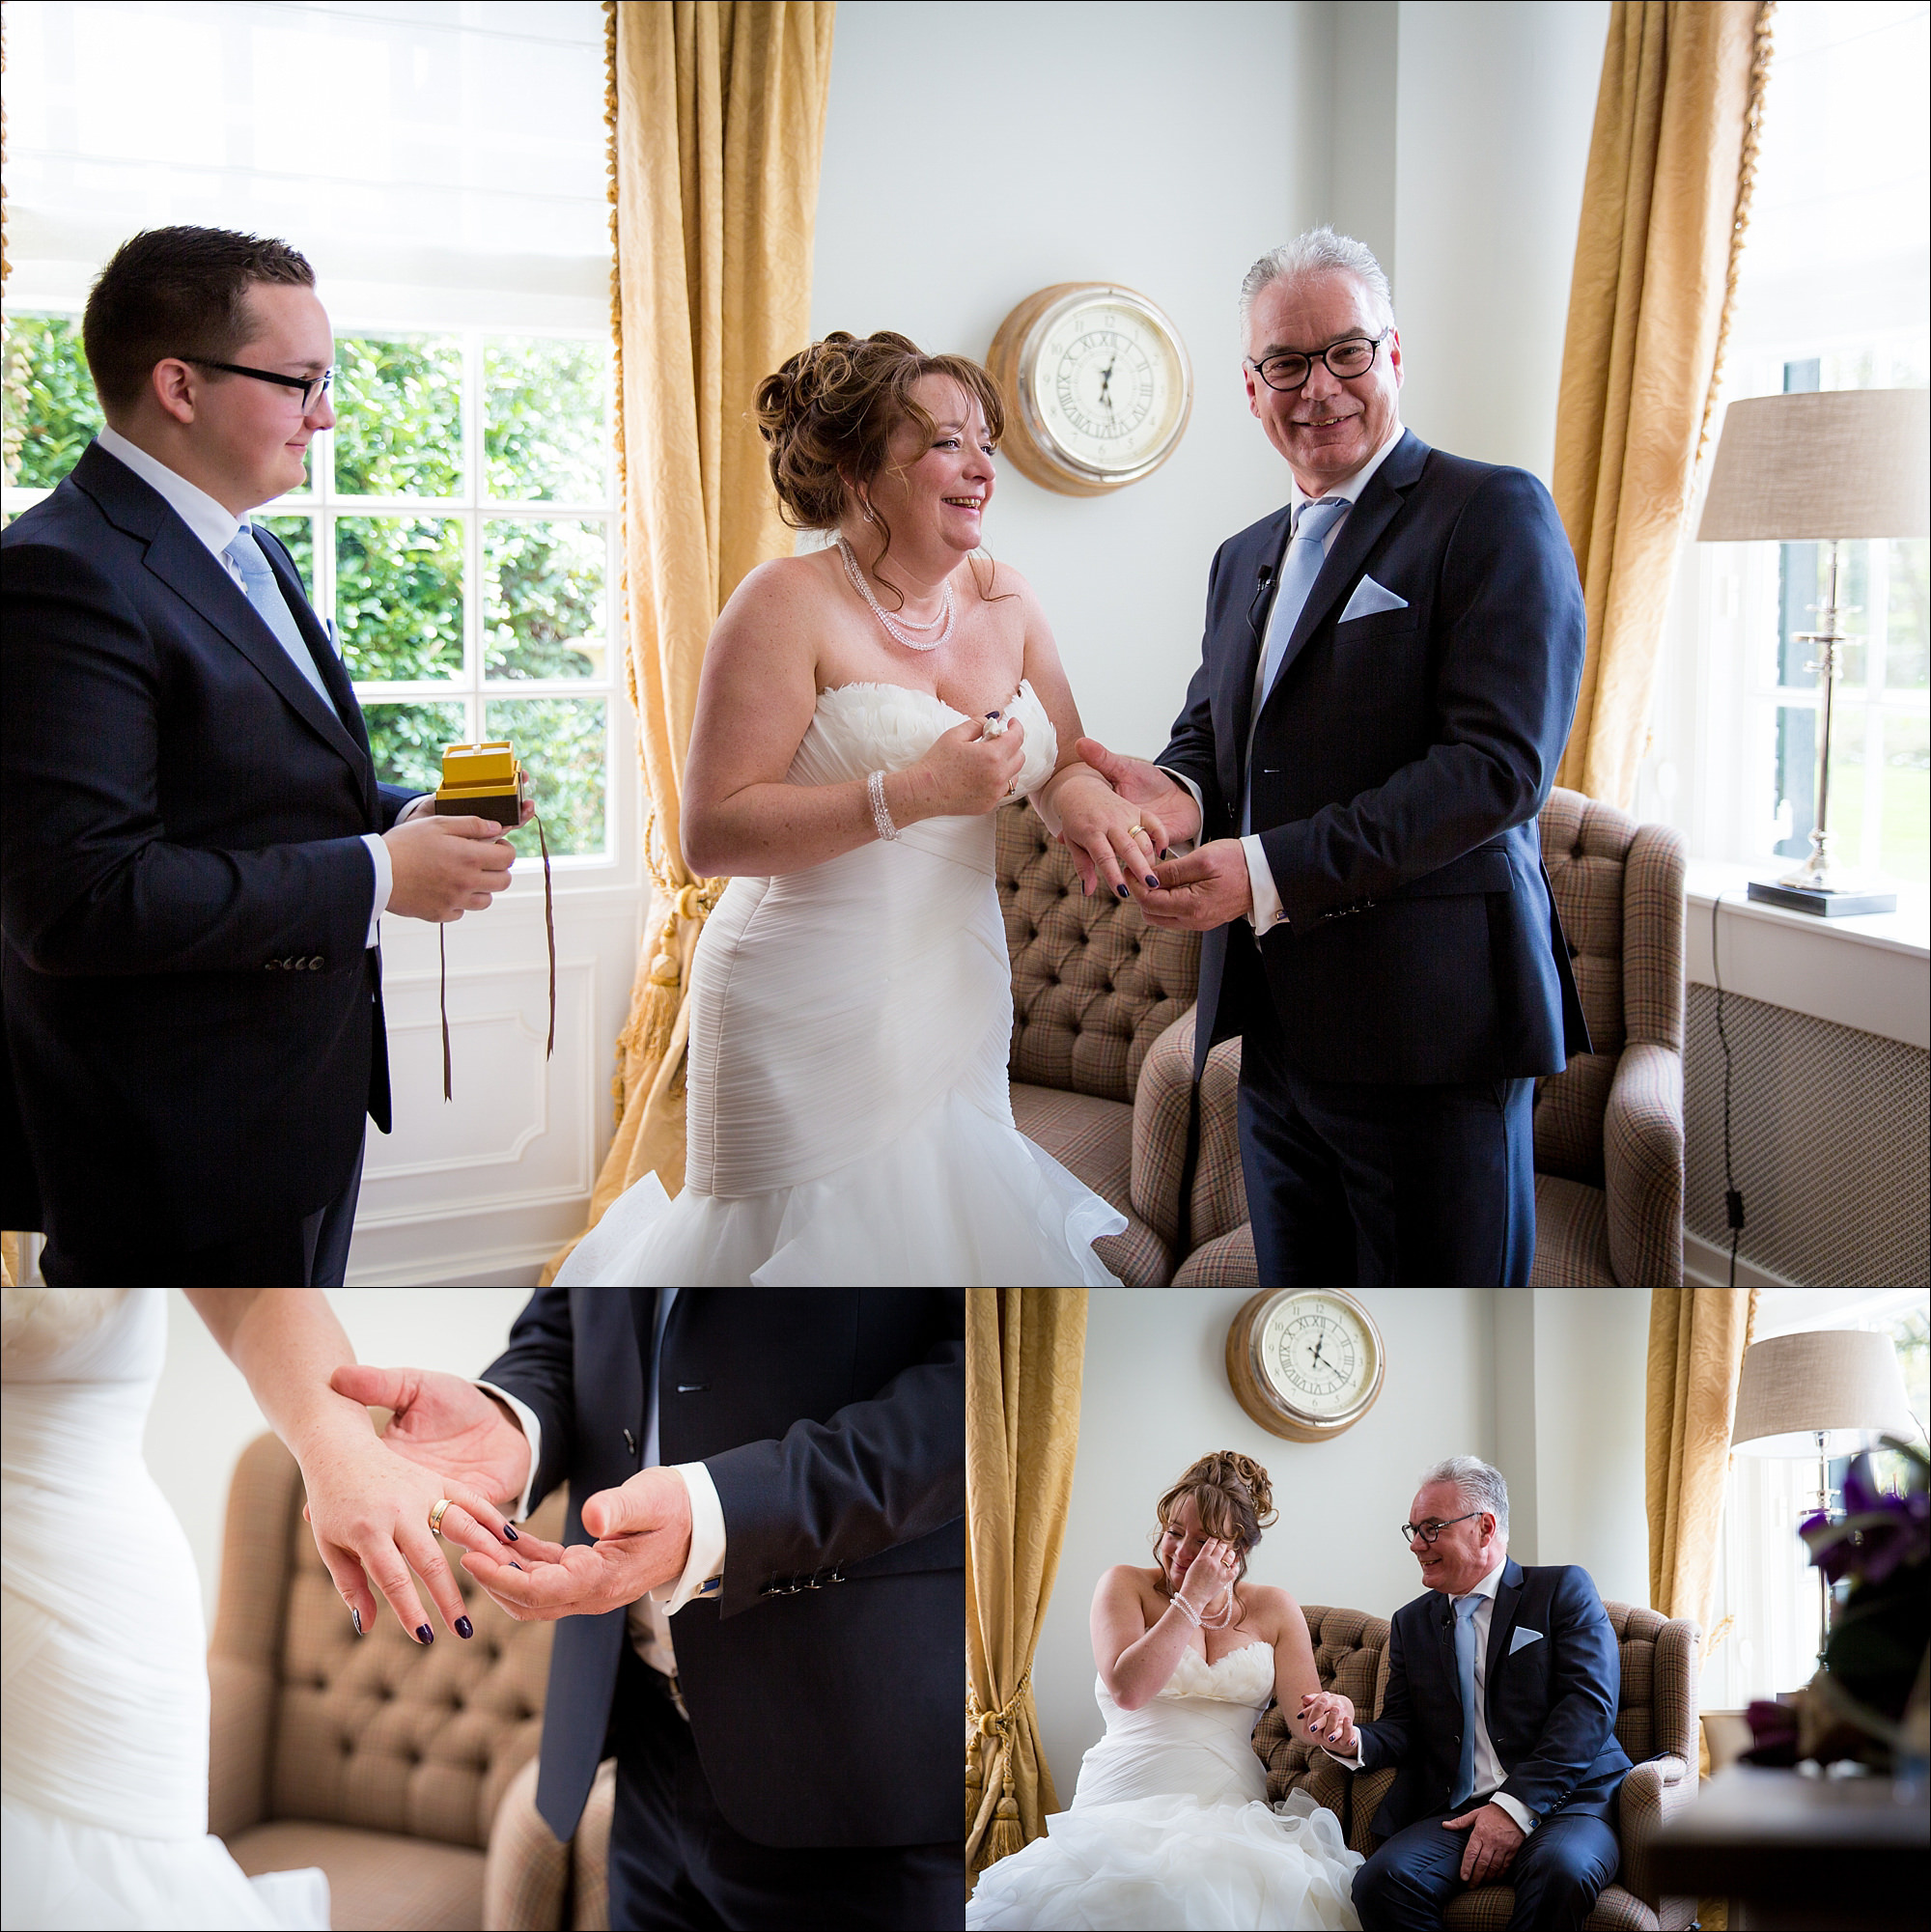 wedding photographer dublin david duignan photography real weddings Ireland 53